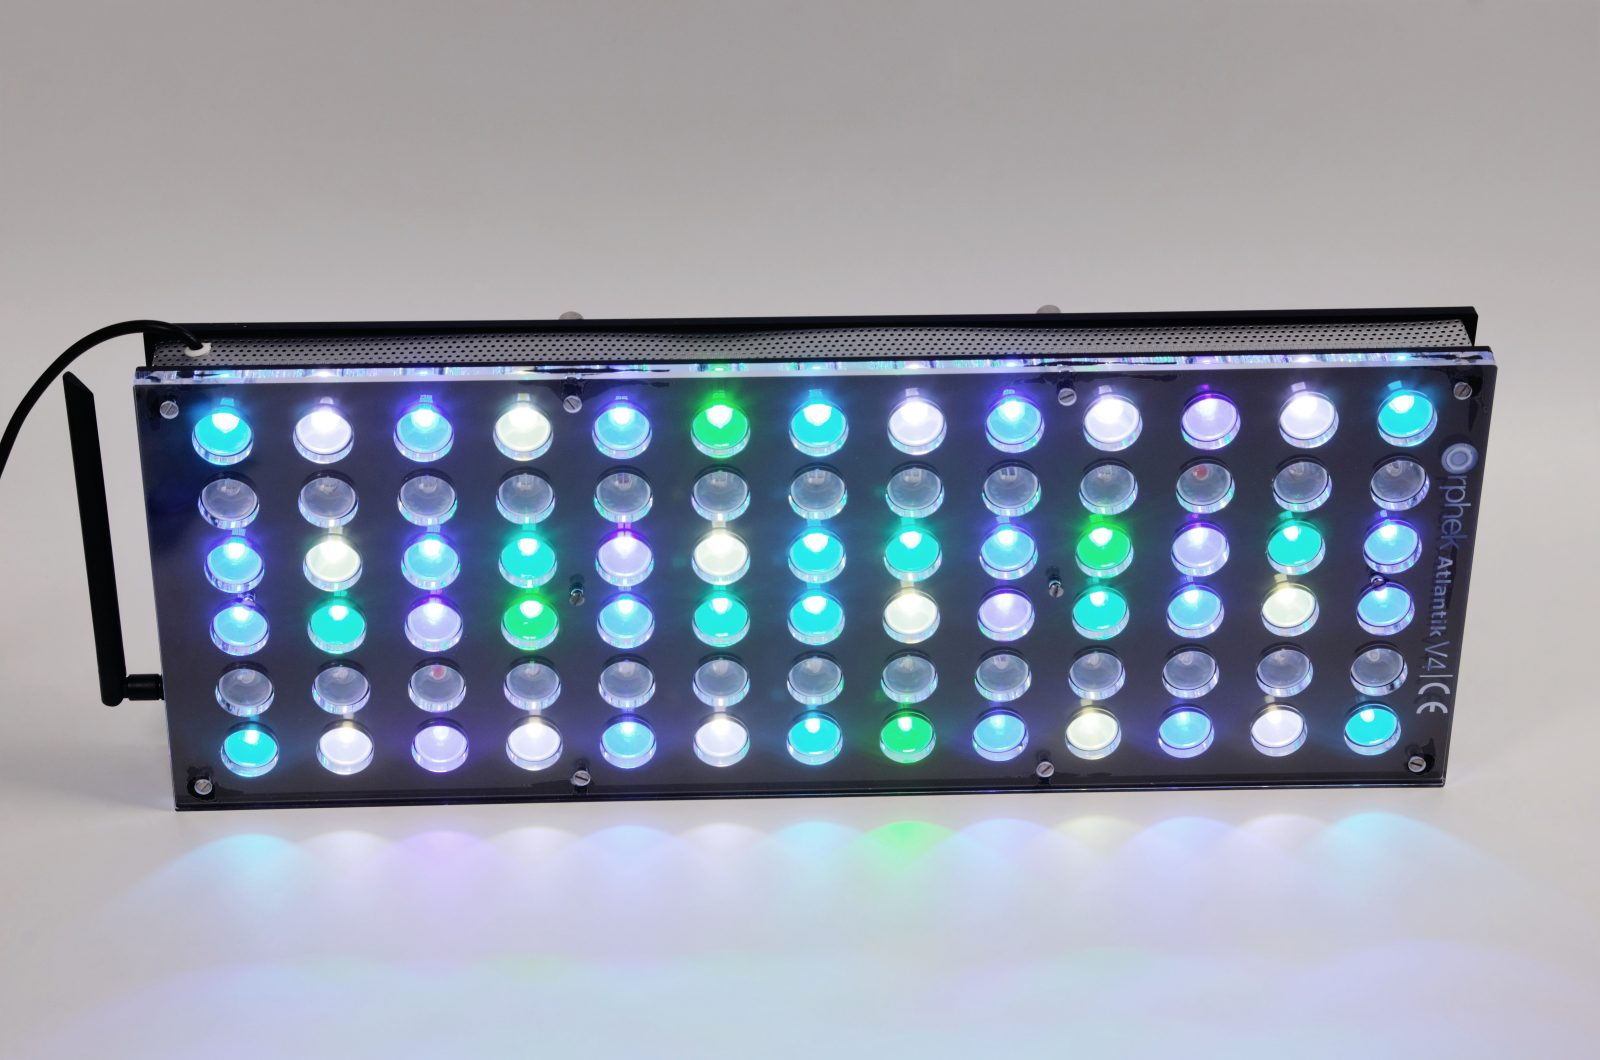 Orphek-Aquarium-LED-Lighting-Reef-Atlantik-V4-אור בערוץ 1 + 2